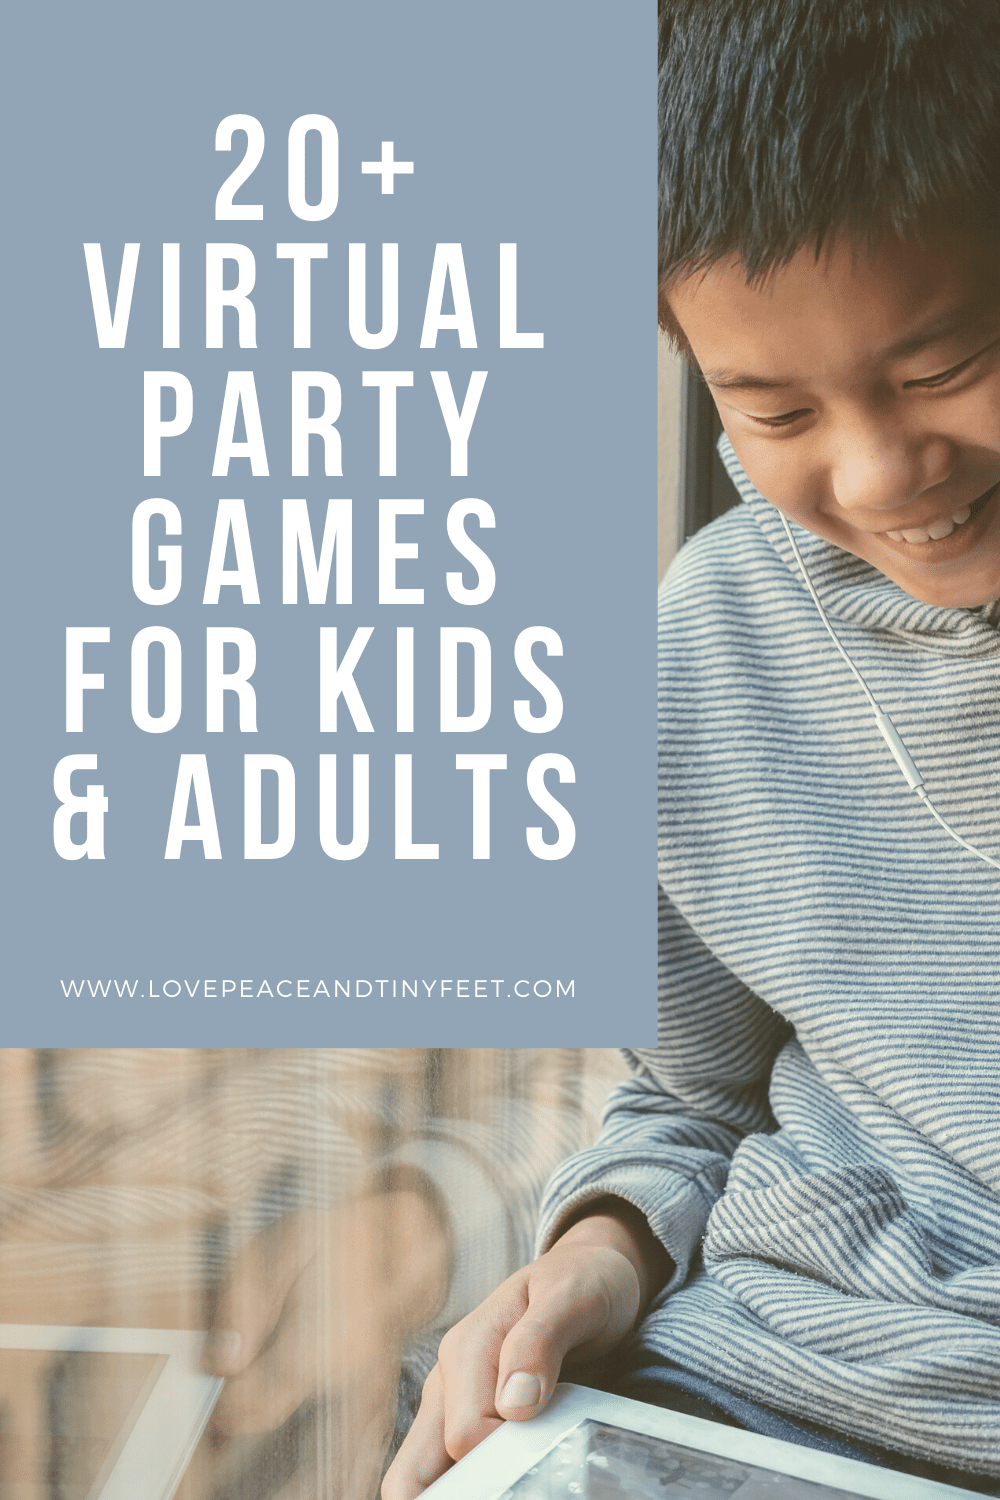 Virtual Parties are a fun way to enjoy the company of friends while social distancing. Here's a list of fun virtual party games for kids and adults.